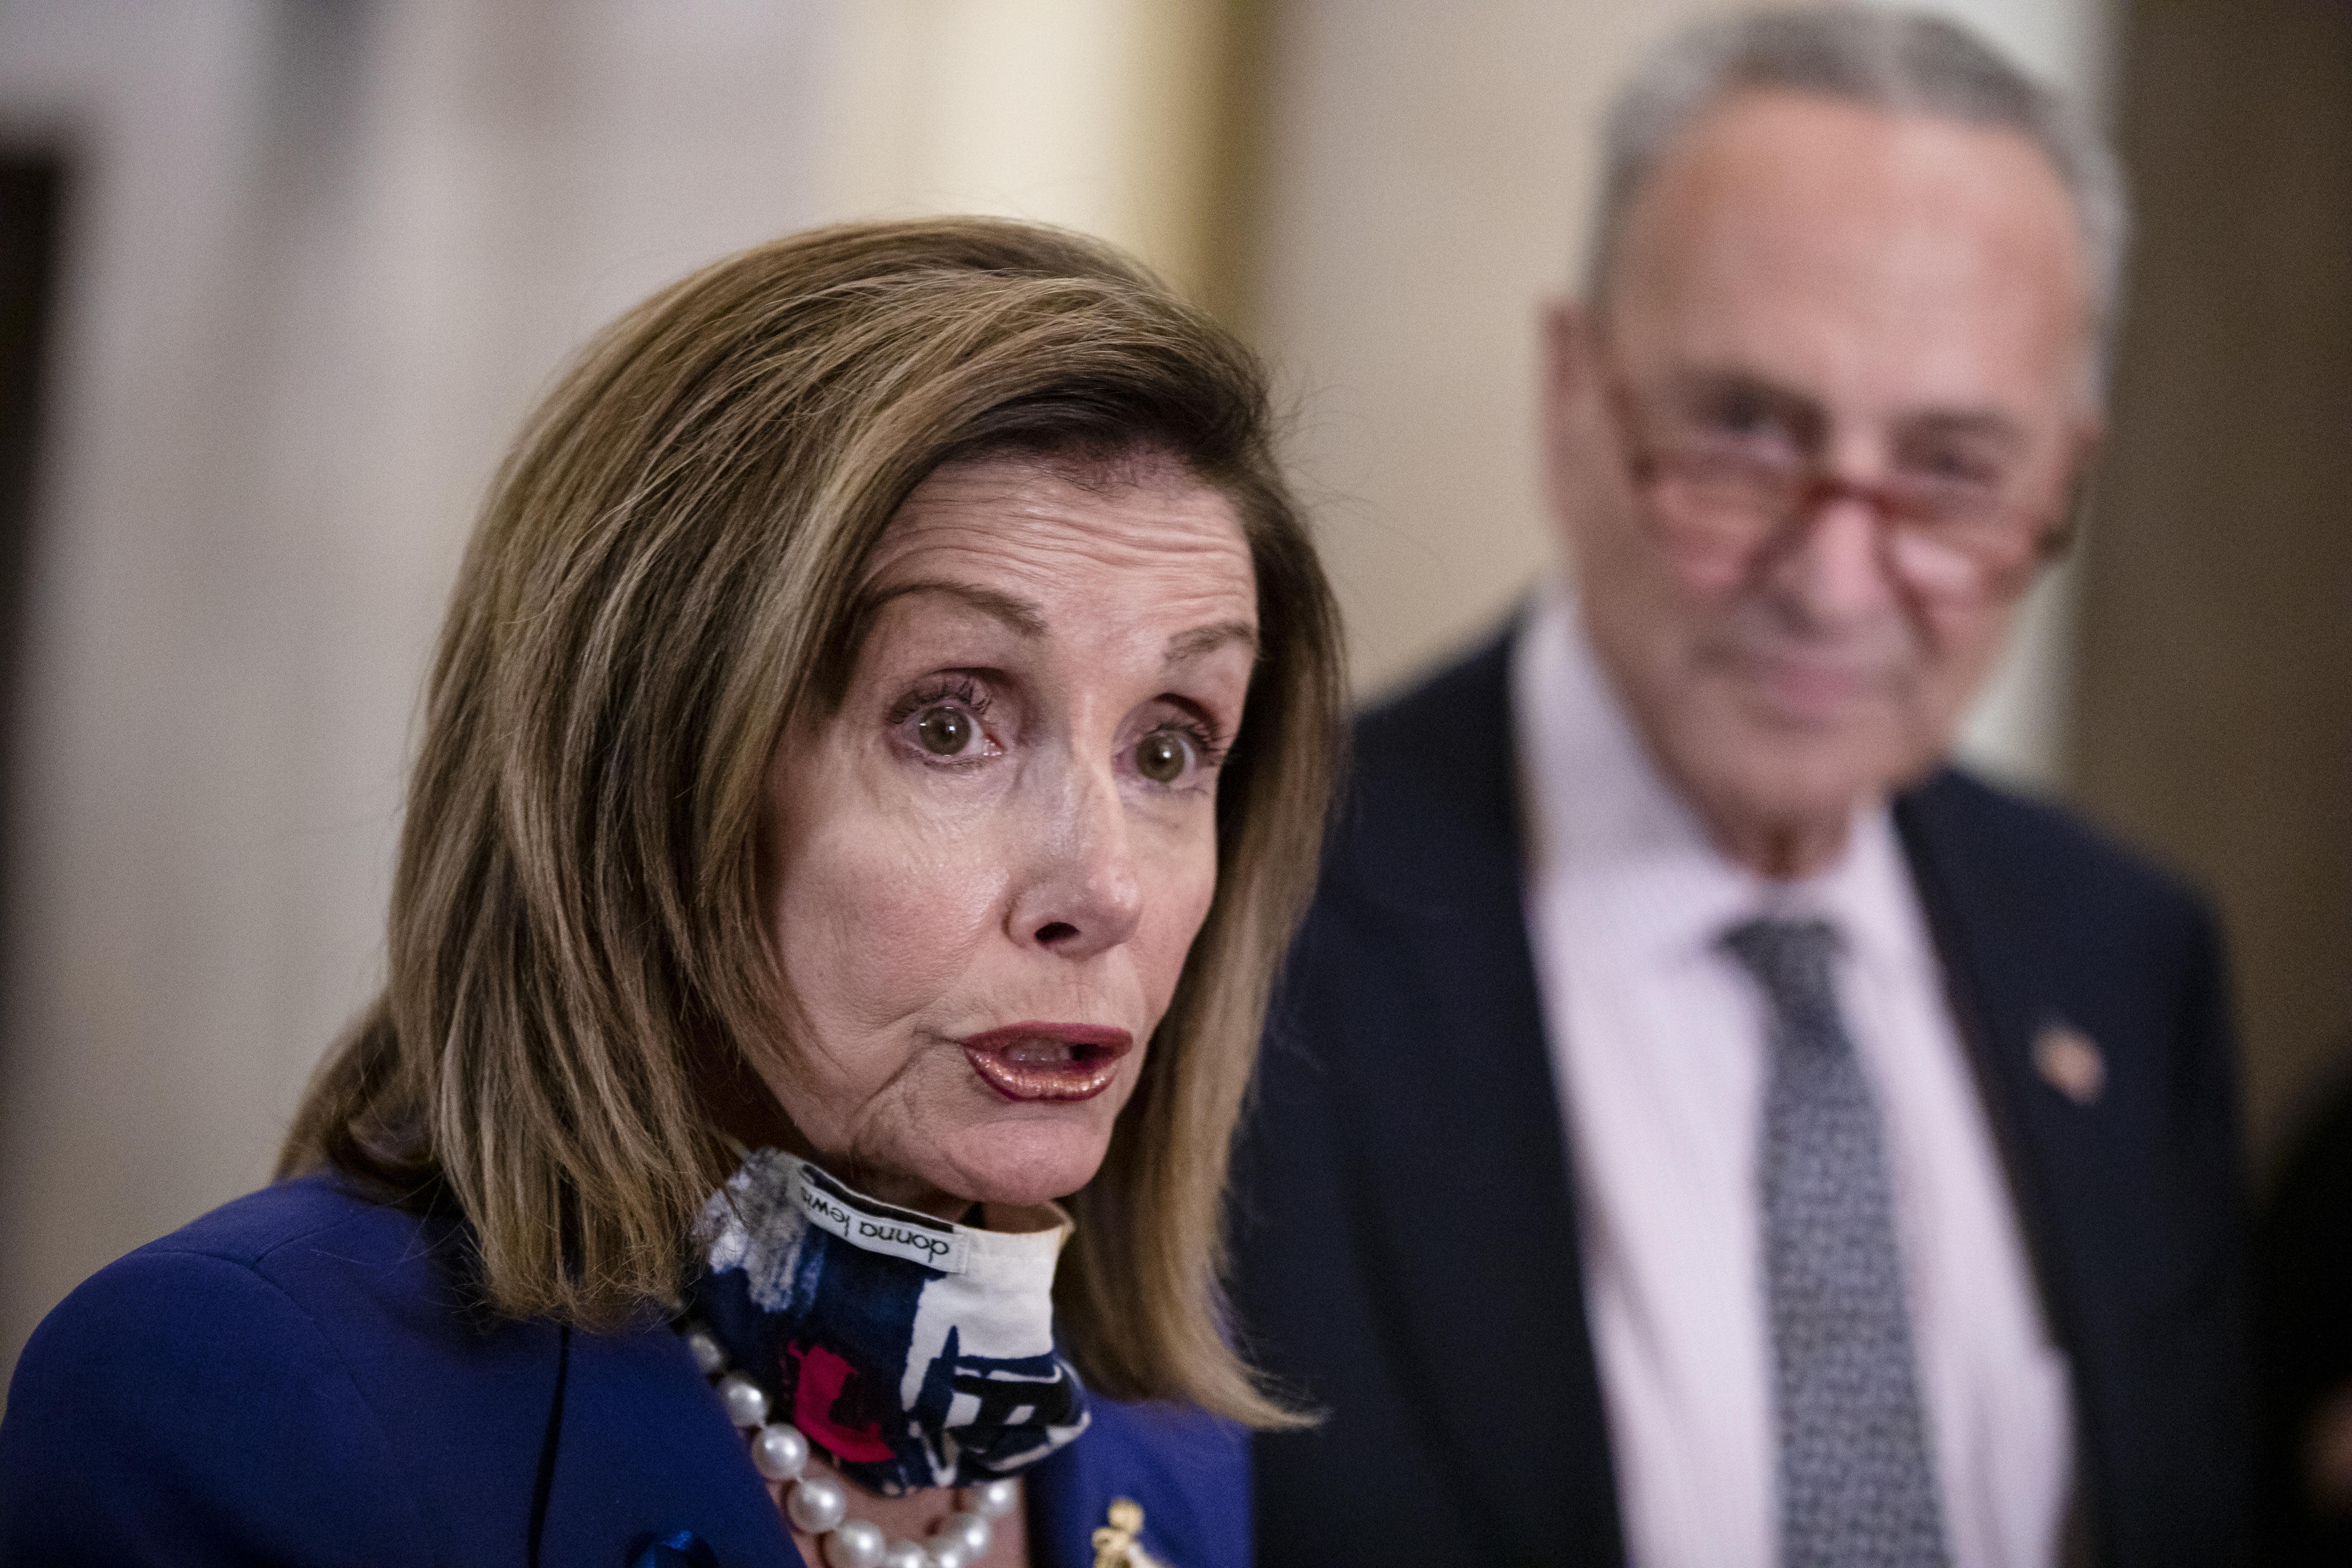 Schumer, Pelosi call on postmaster general to reverse service changes